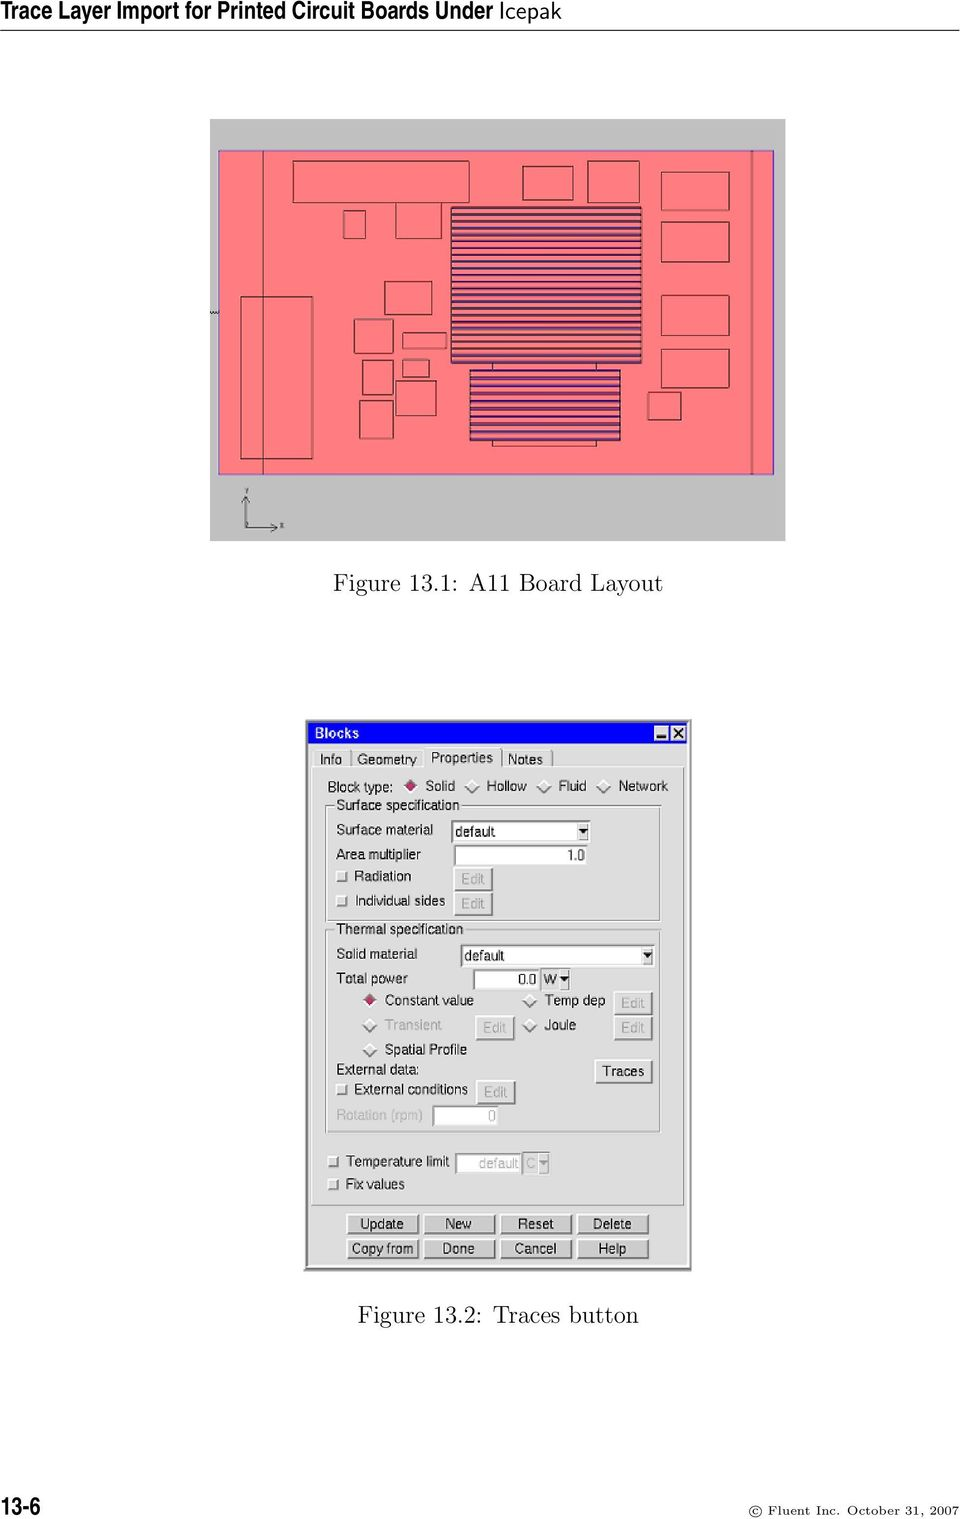 Trace Layer Import For Printed Circuit Boards Under Icepak Pdf Six Board 1 A11 Layout Figure 13